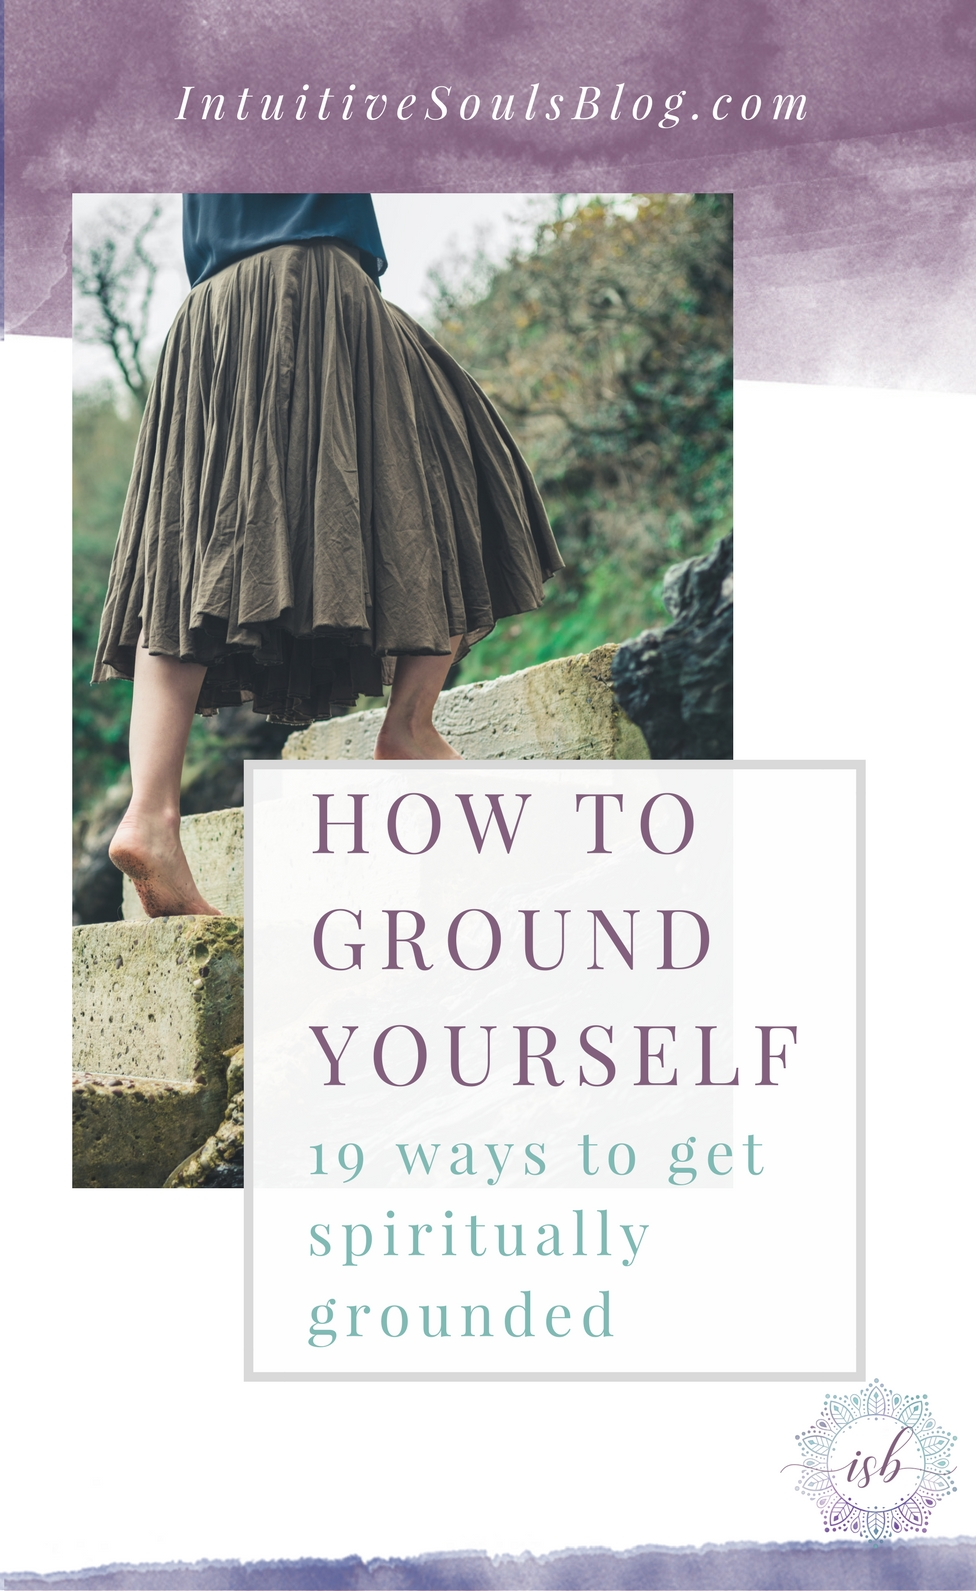 Trying to figure out how to ground yourself? Yeah, I hear ya! Not every spiritual grounding method works for every person, so here are 19 techniques for you to try! Some are super spiritual, others are really fun (#10 OMG yes!). Plus, you can combine any of these ideas for something truly unique!